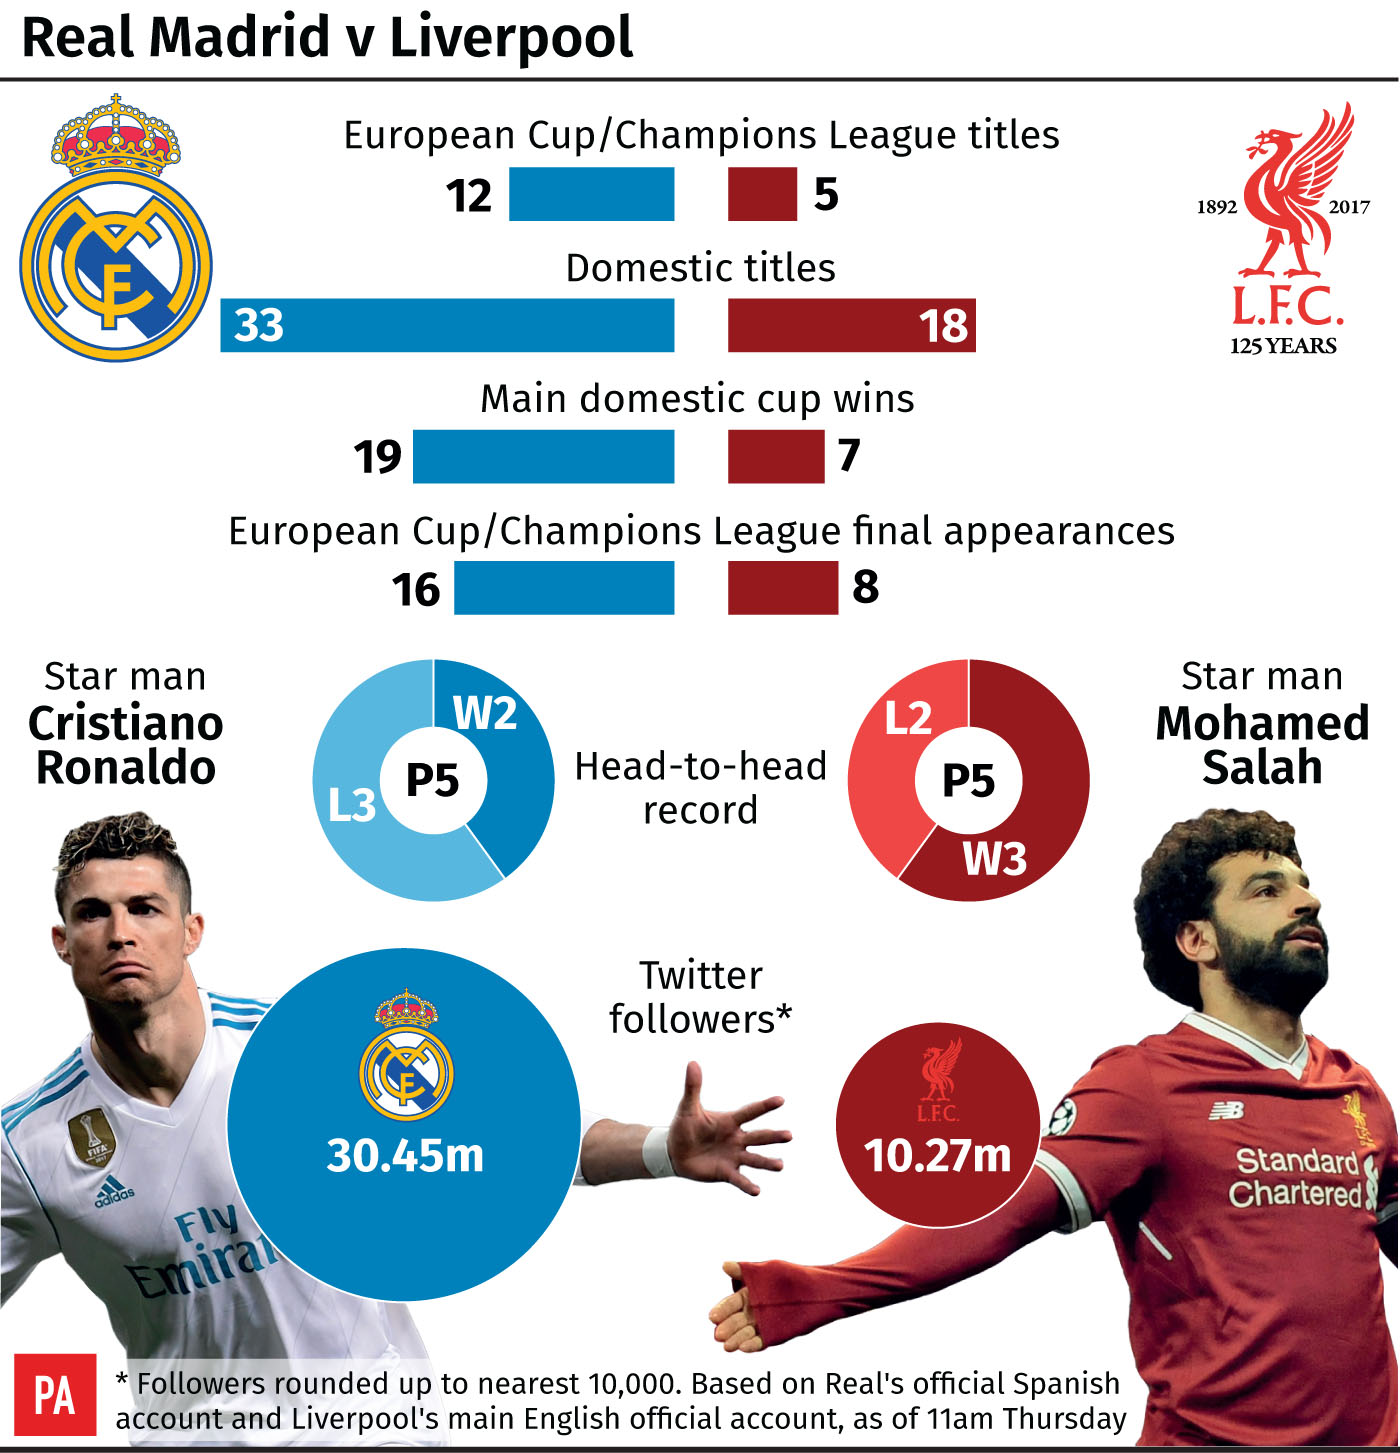 Liverpool Fc Beaten 3 0 By Real Madrid At Anfield: A Comparison Of The 2018